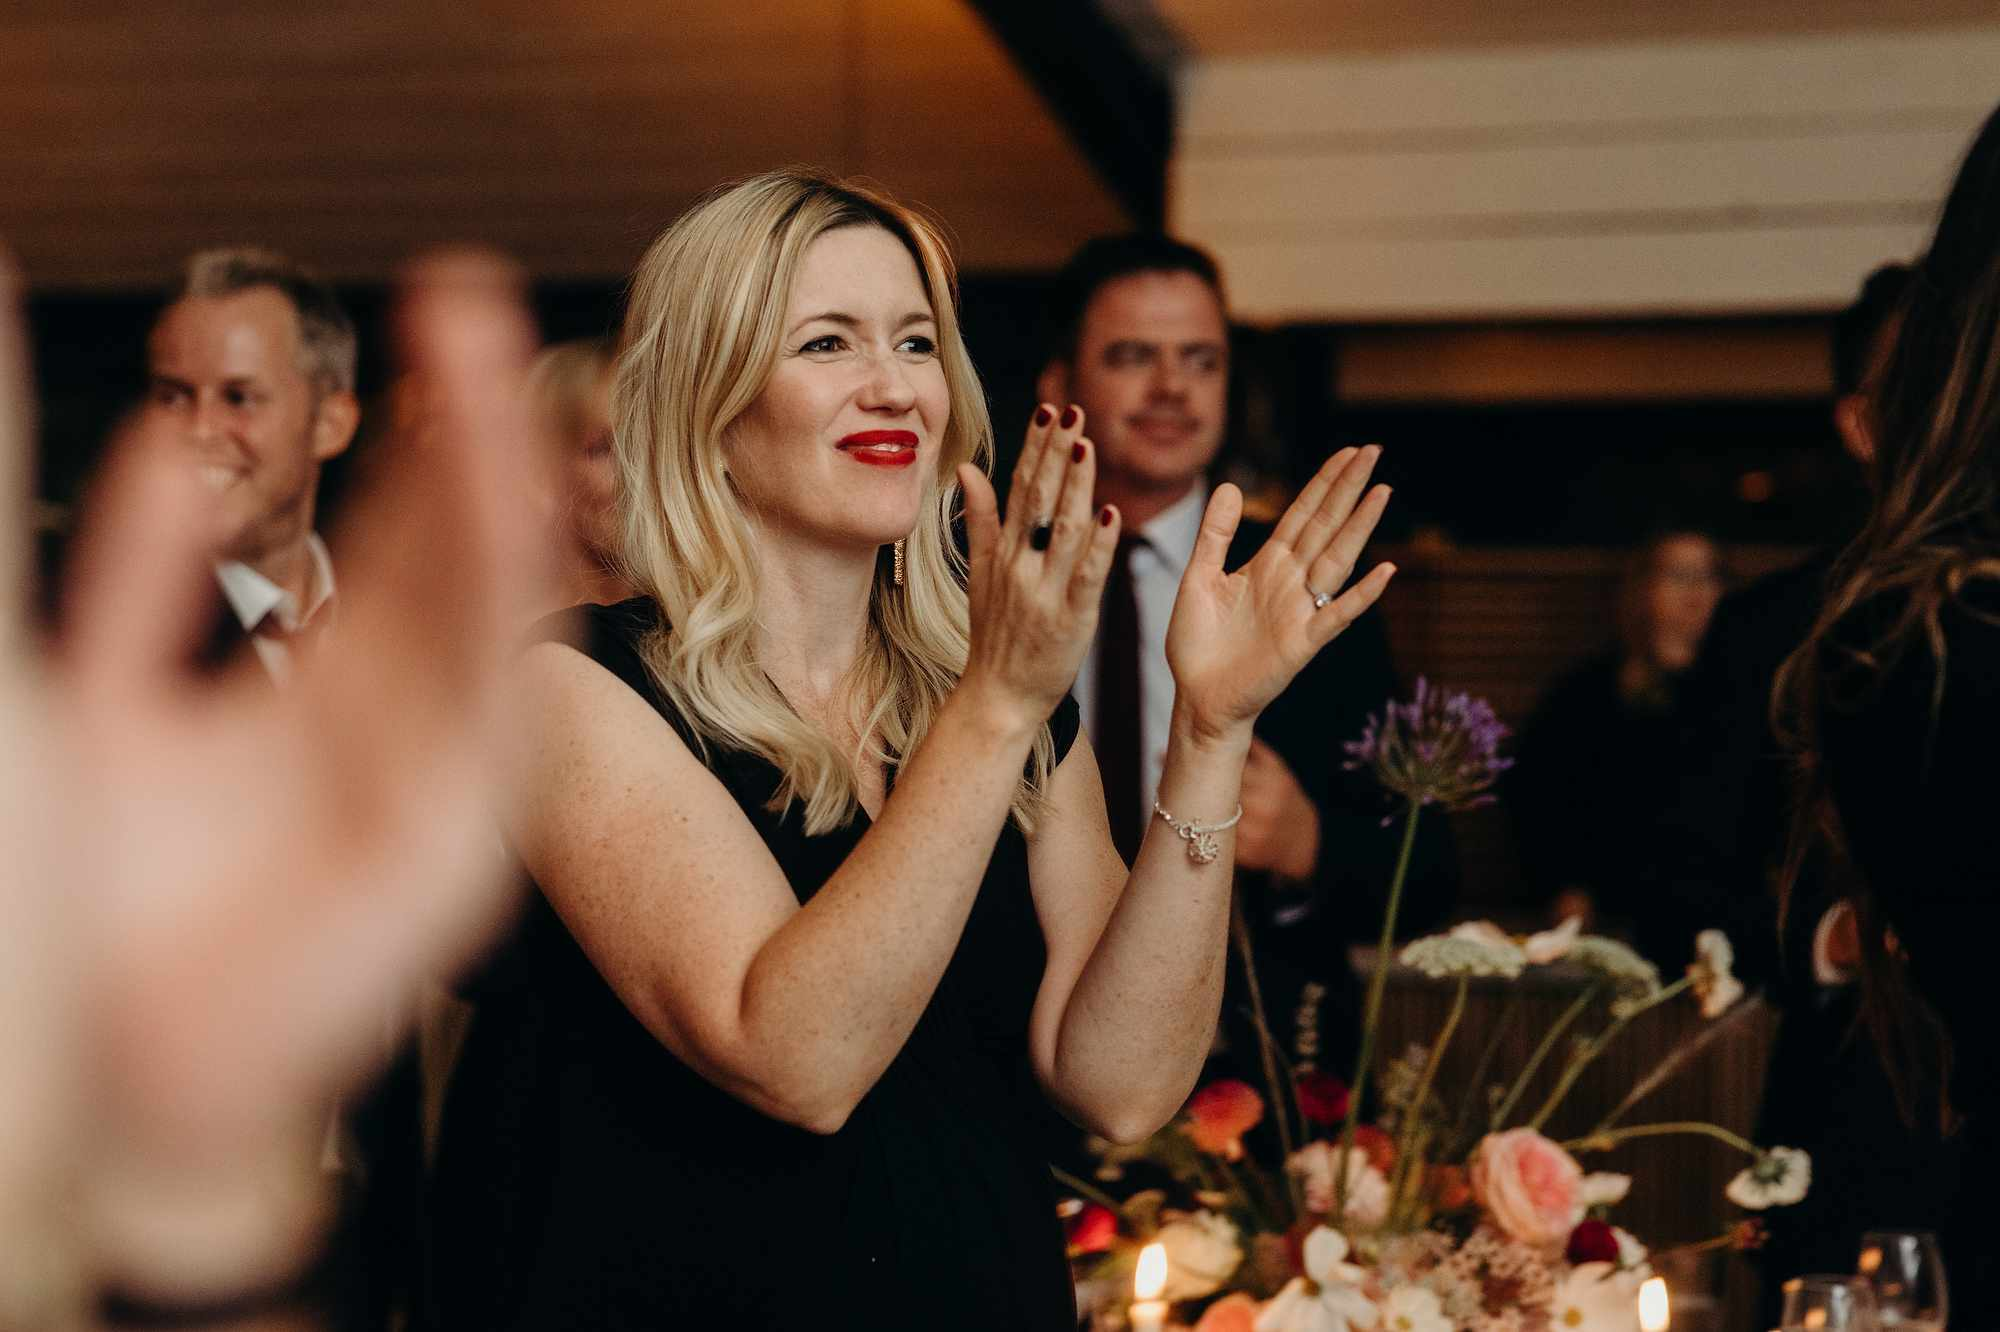 wedding guest clapping